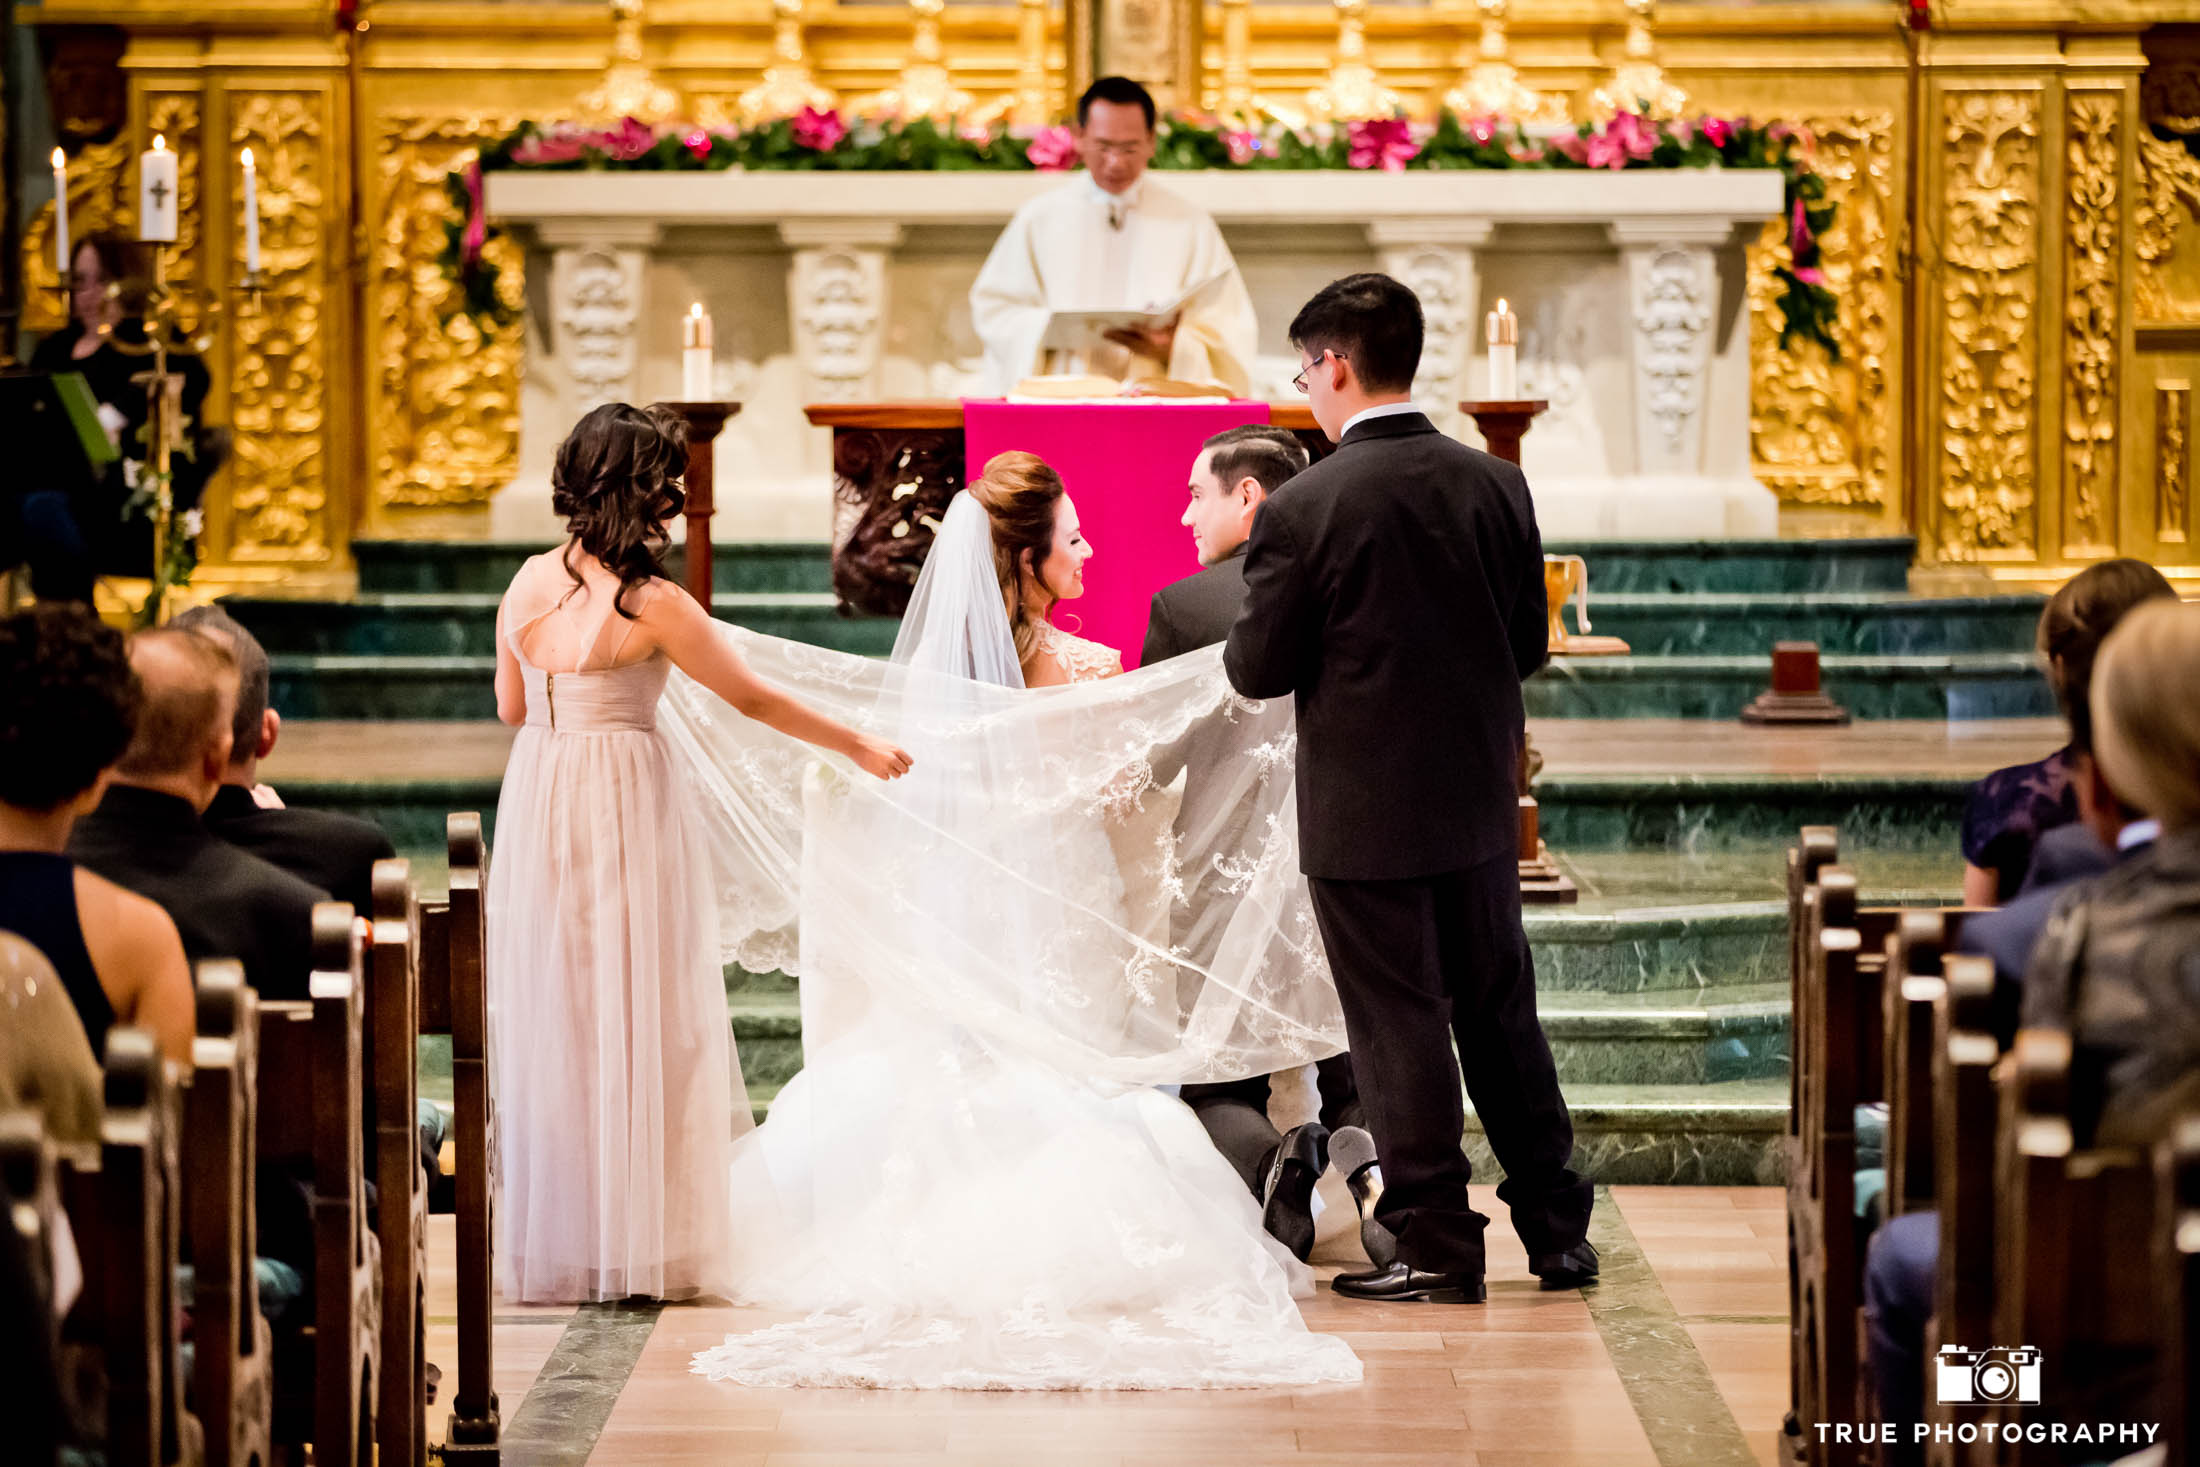 This Catholic wedding incorporates tradition during their USD ceremony.